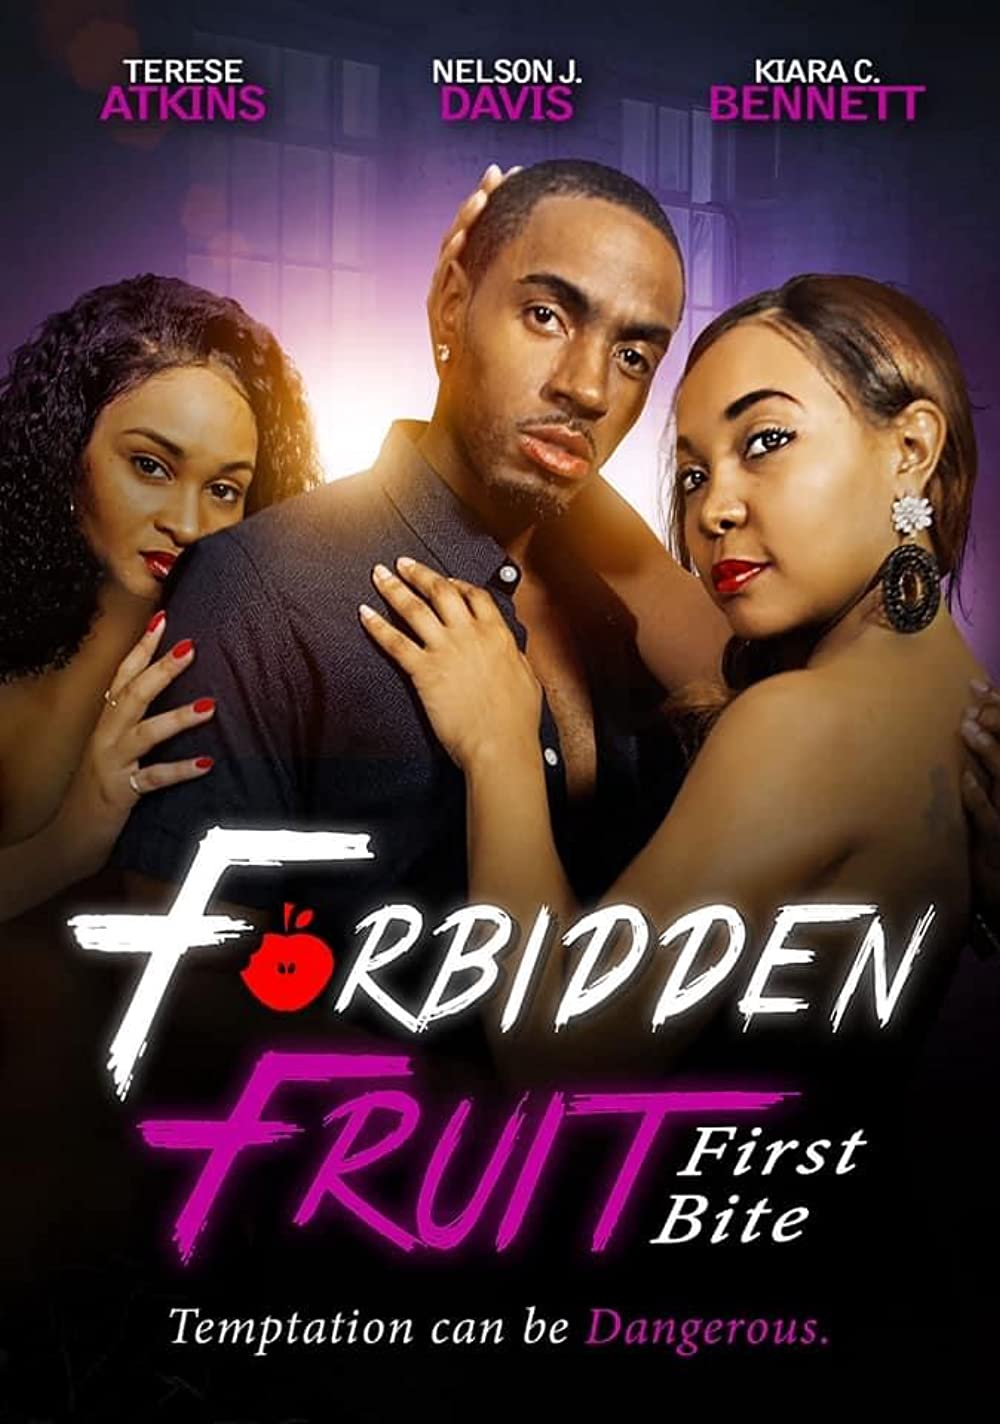 Forbidden Fruit First Bite 2021 English 1080p HDRip ESubs 1.43GB Download